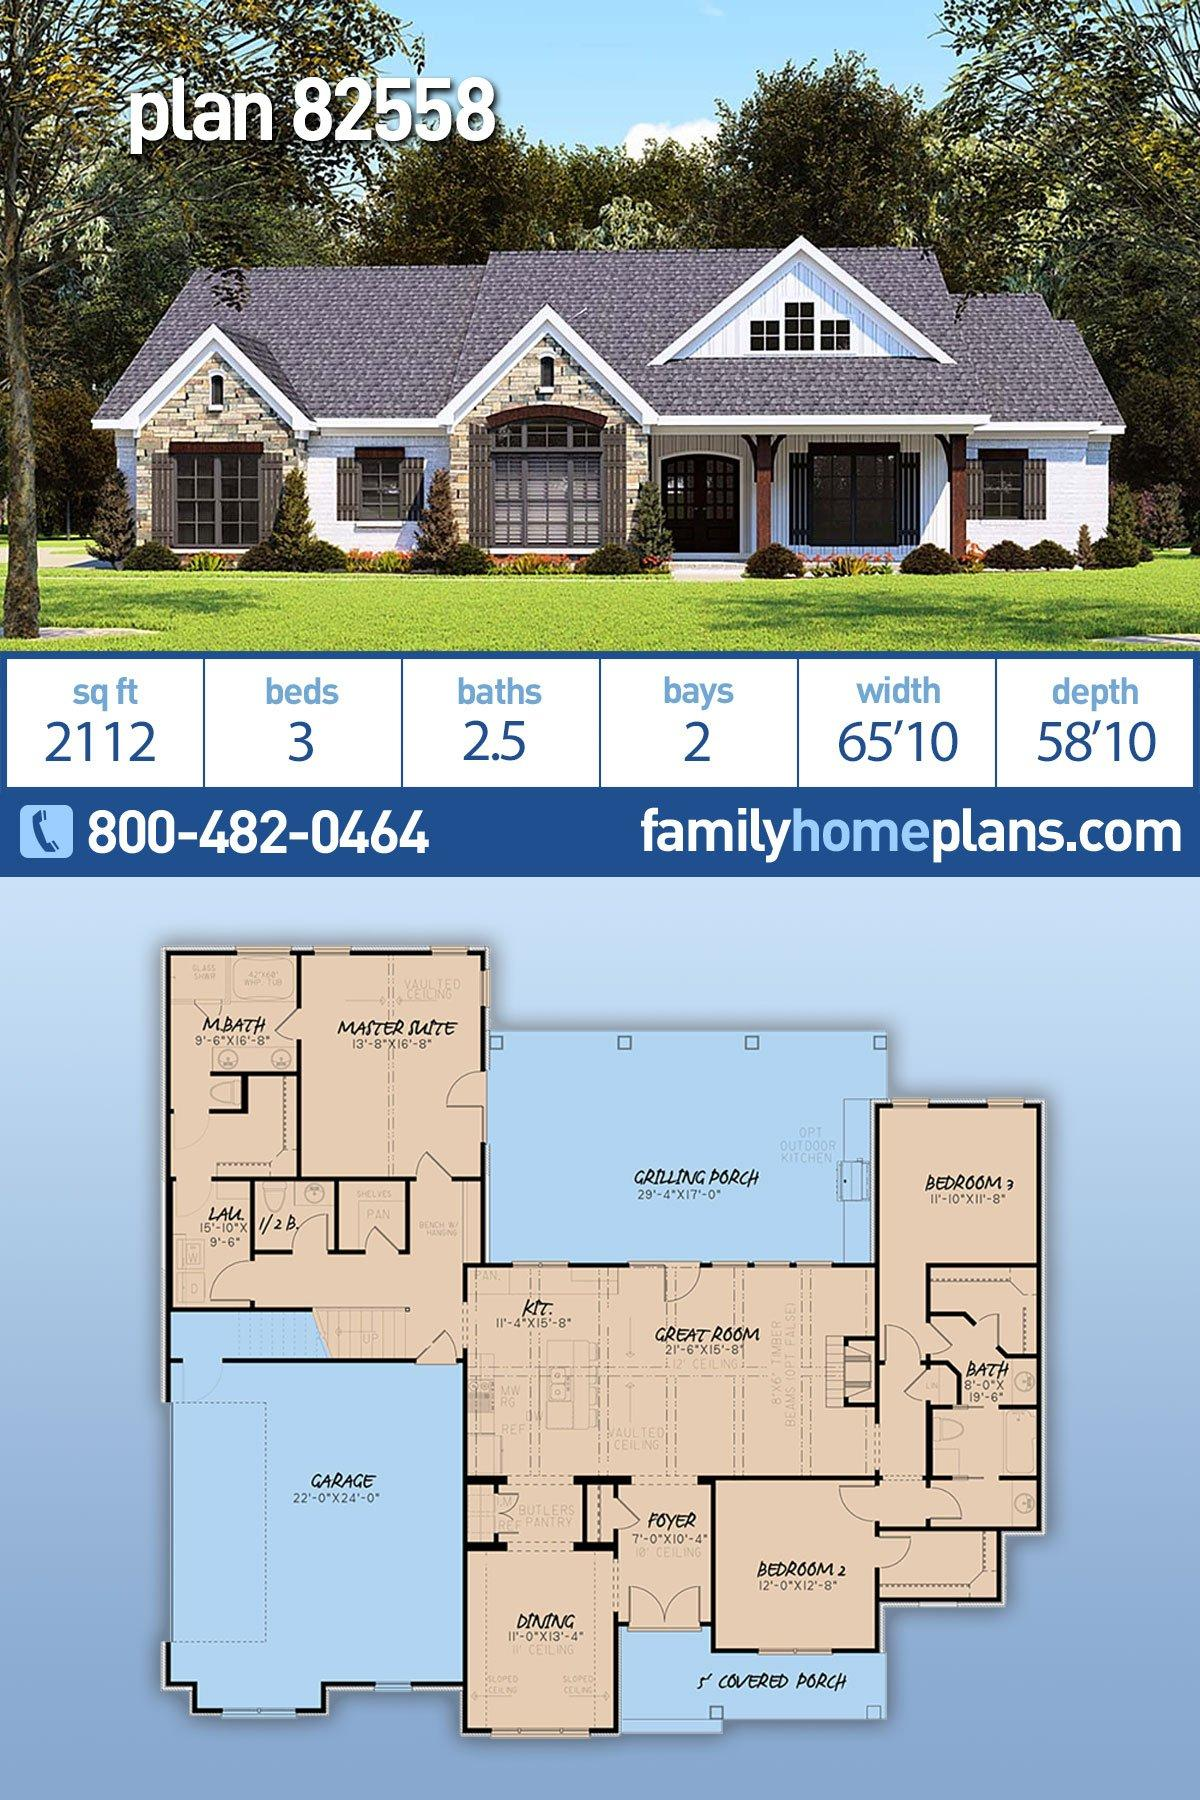 Country, Farmhouse, One-Story, Ranch, Traditional House Plan 82558 with 3 Beds, 3 Baths, 2 Car Garage